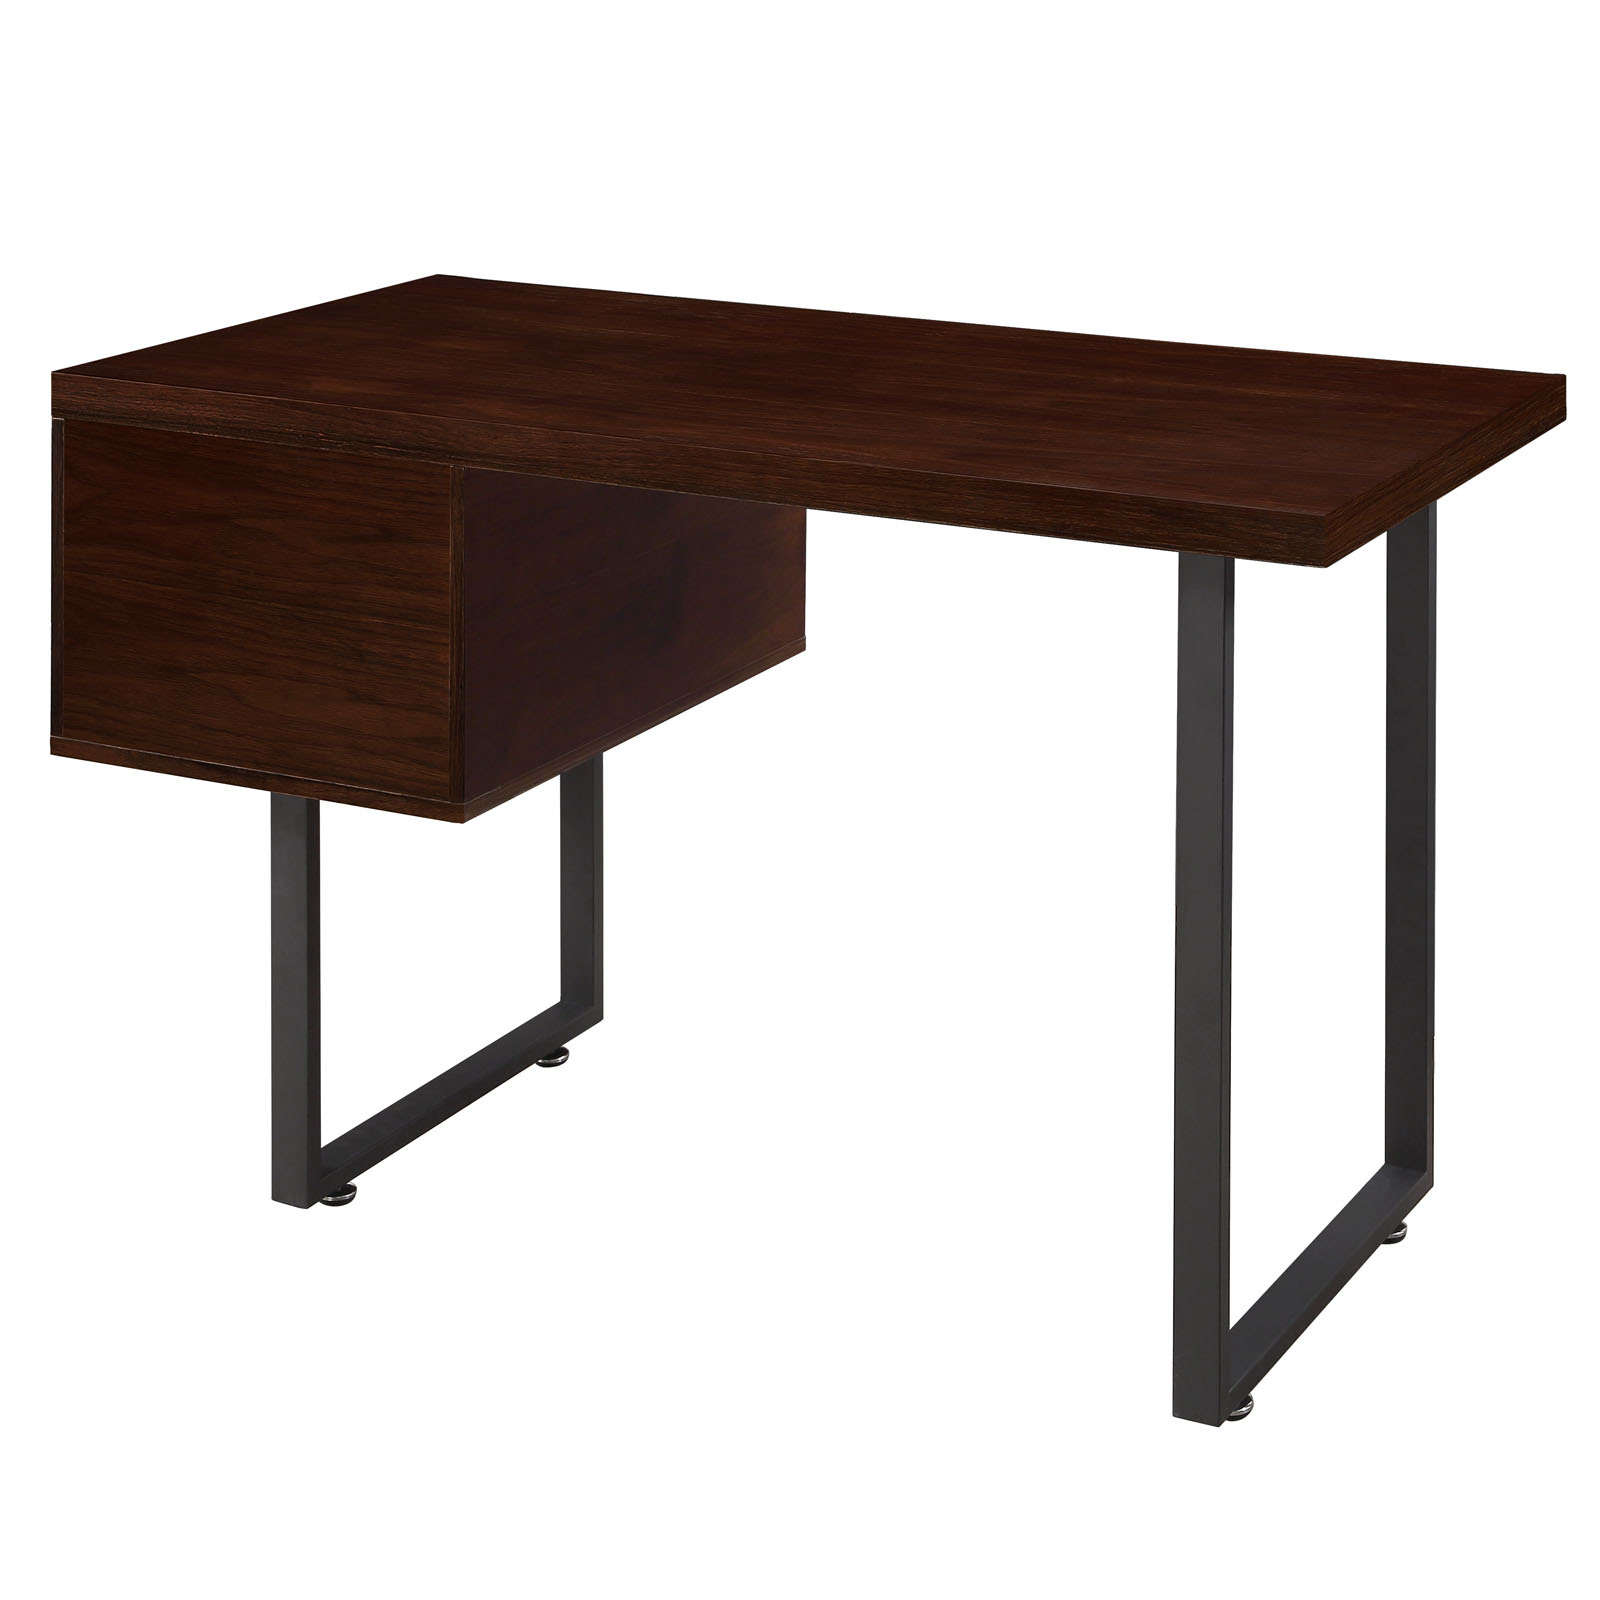 space saving desk from modway back view shown in walnut brown